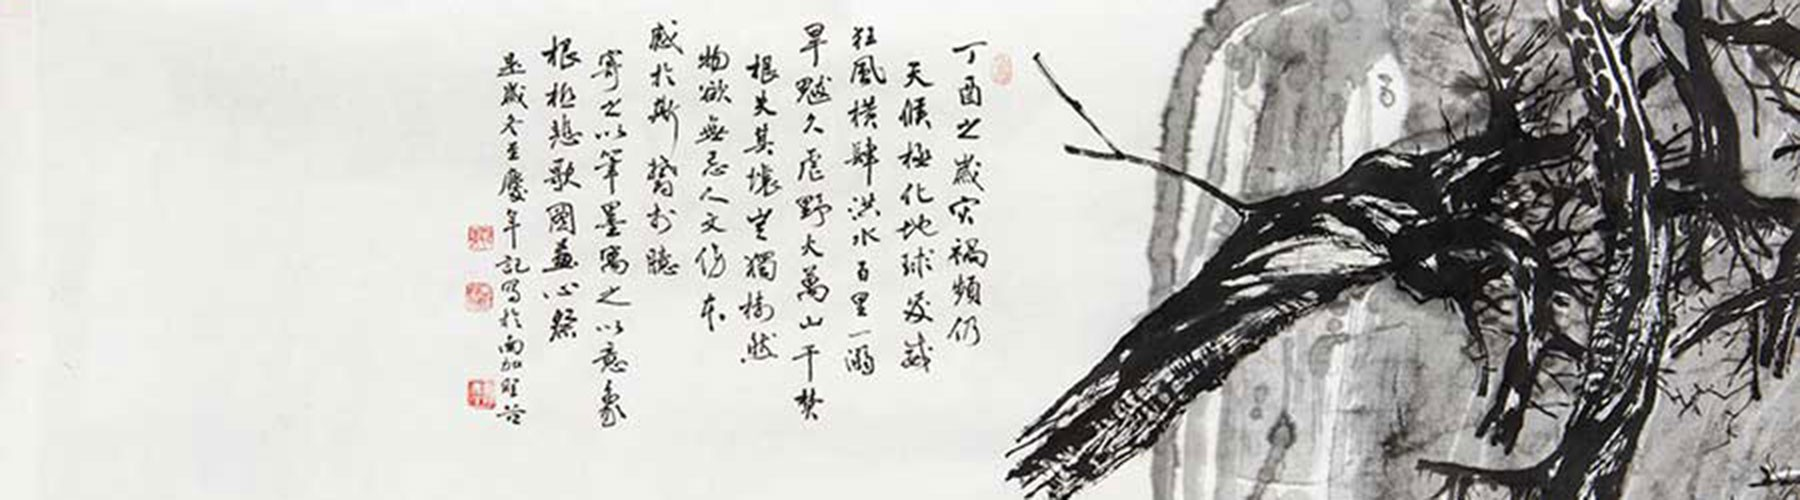 Detail of Illustrations to the Rhapsody on a Barren Tree by Tang Qingnian